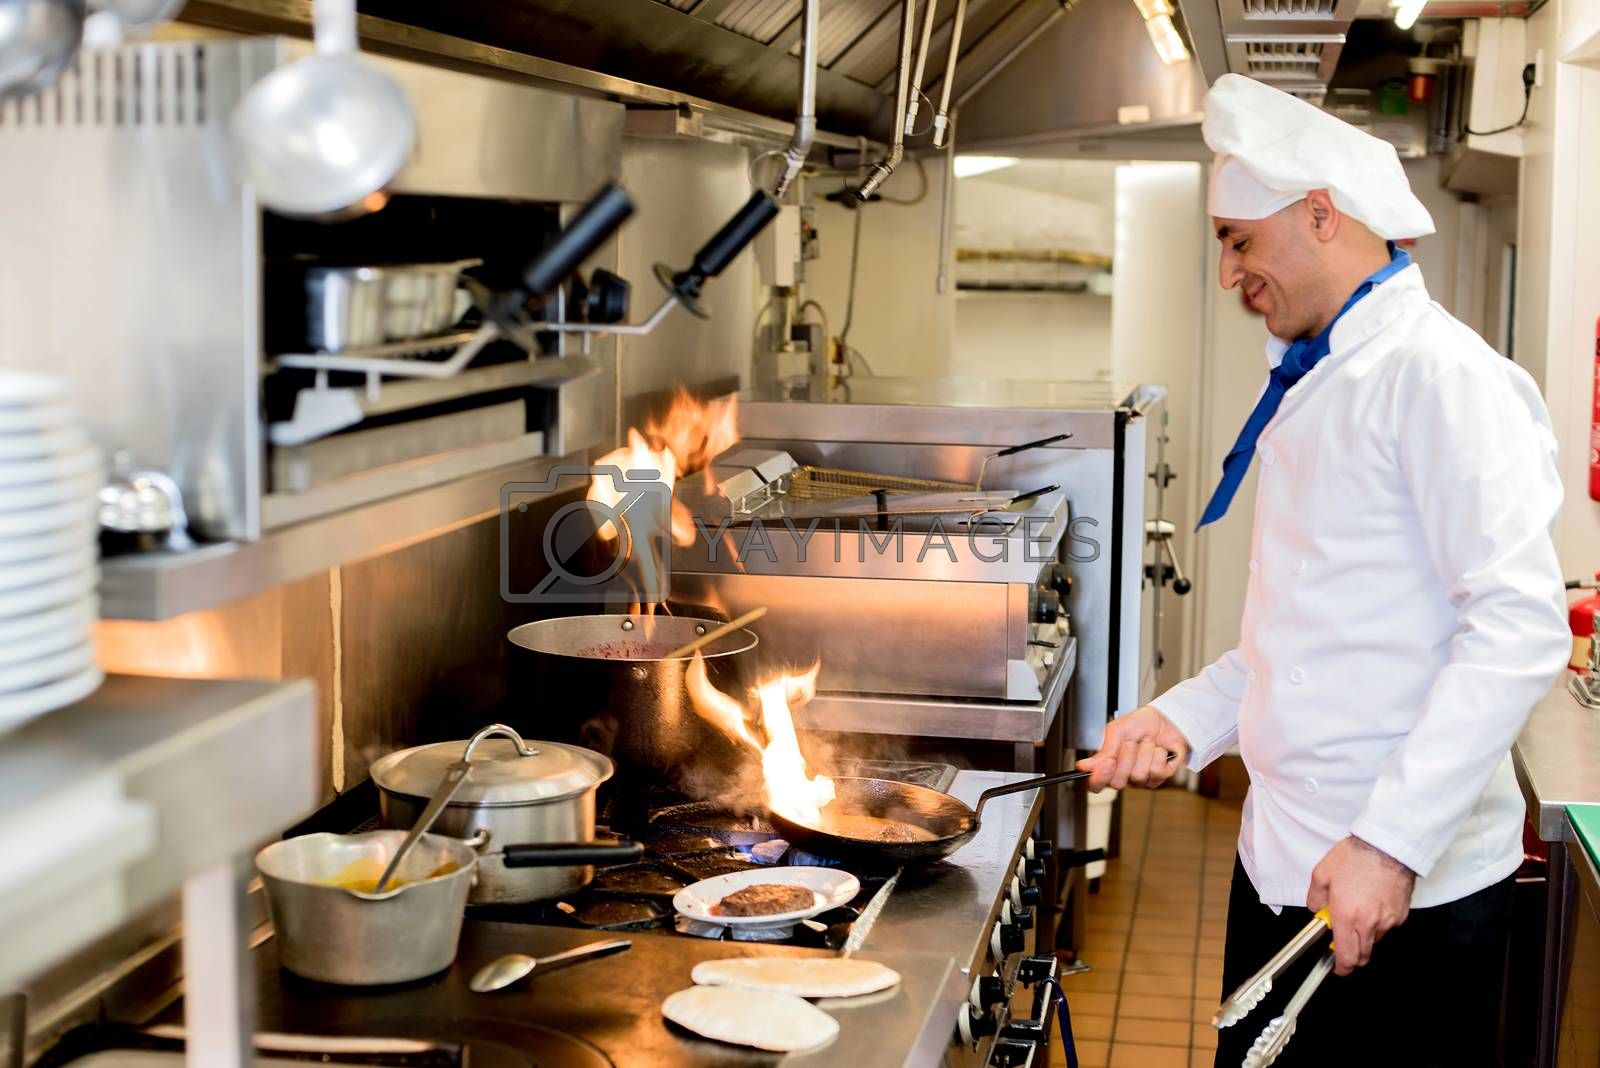 Male chef cooking with flame in a frying pan on kitchen